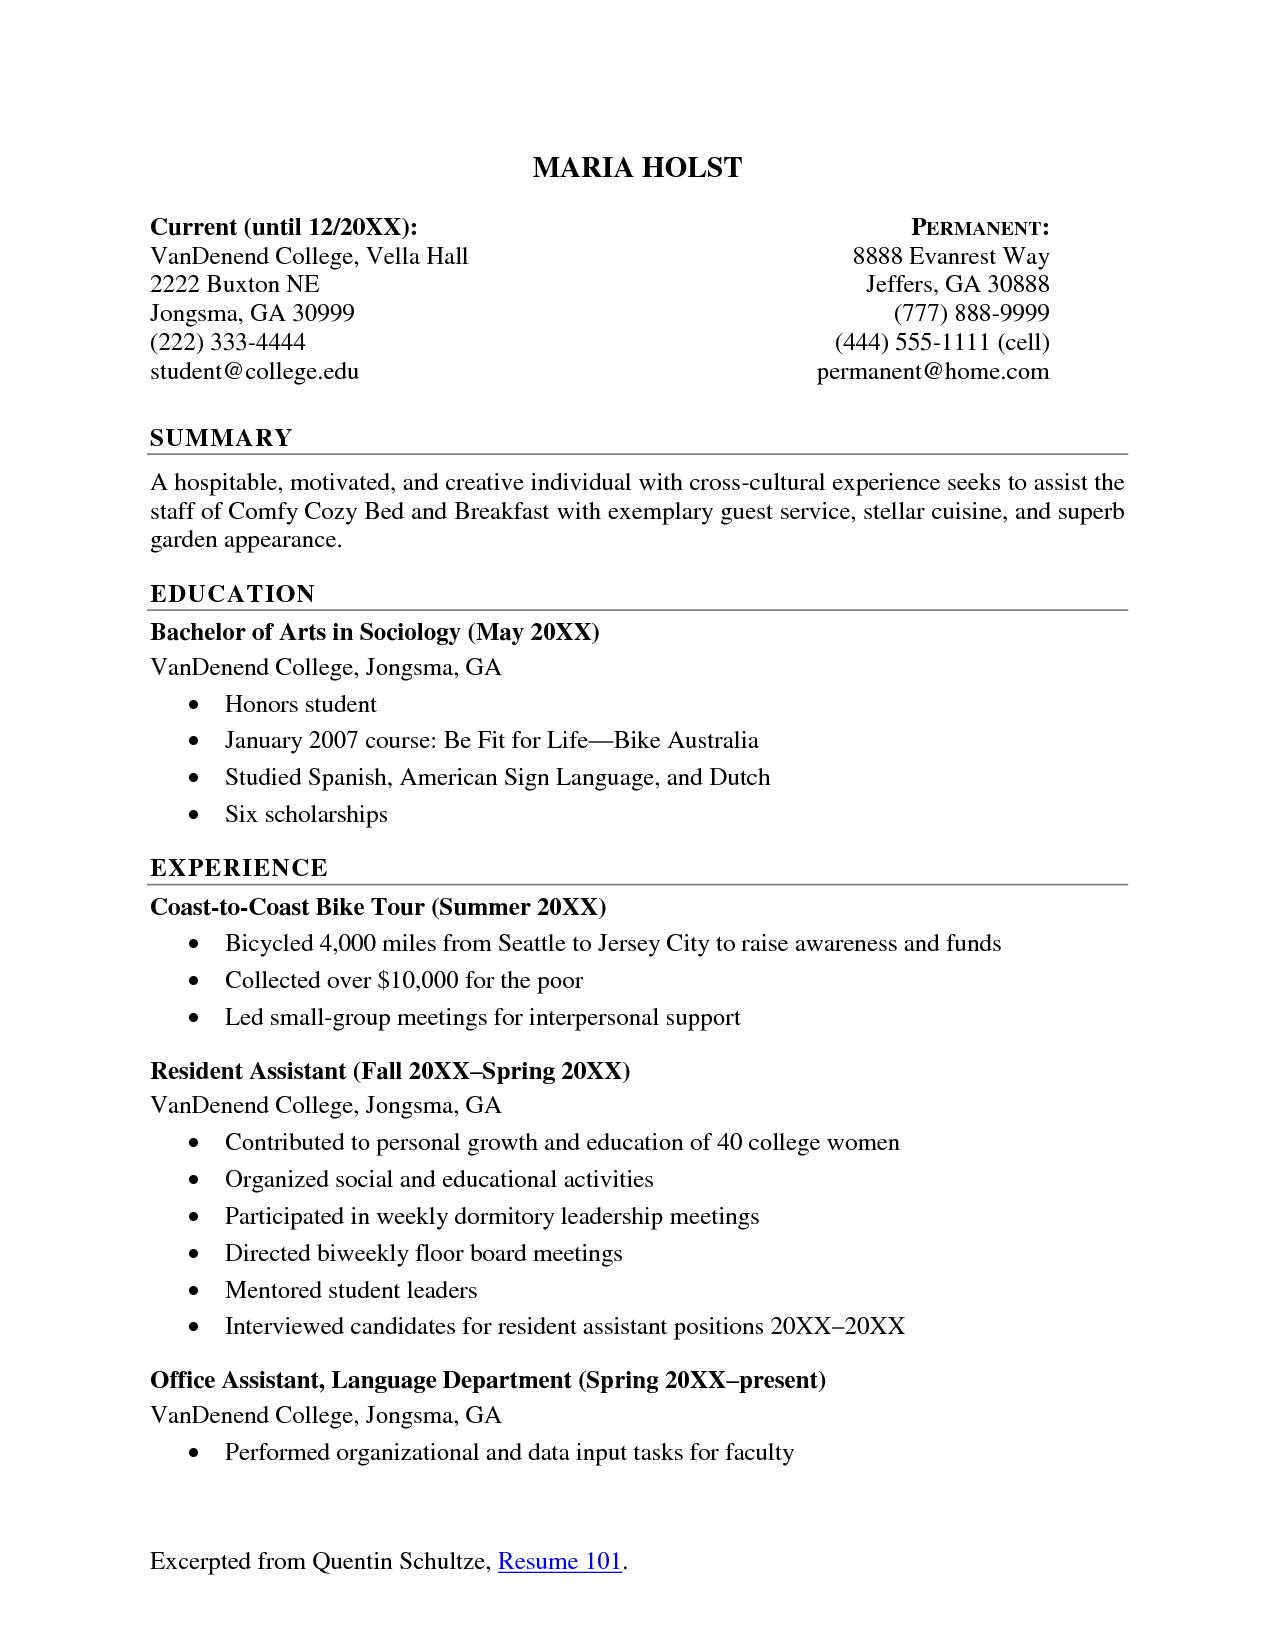 resume examples education as a college student